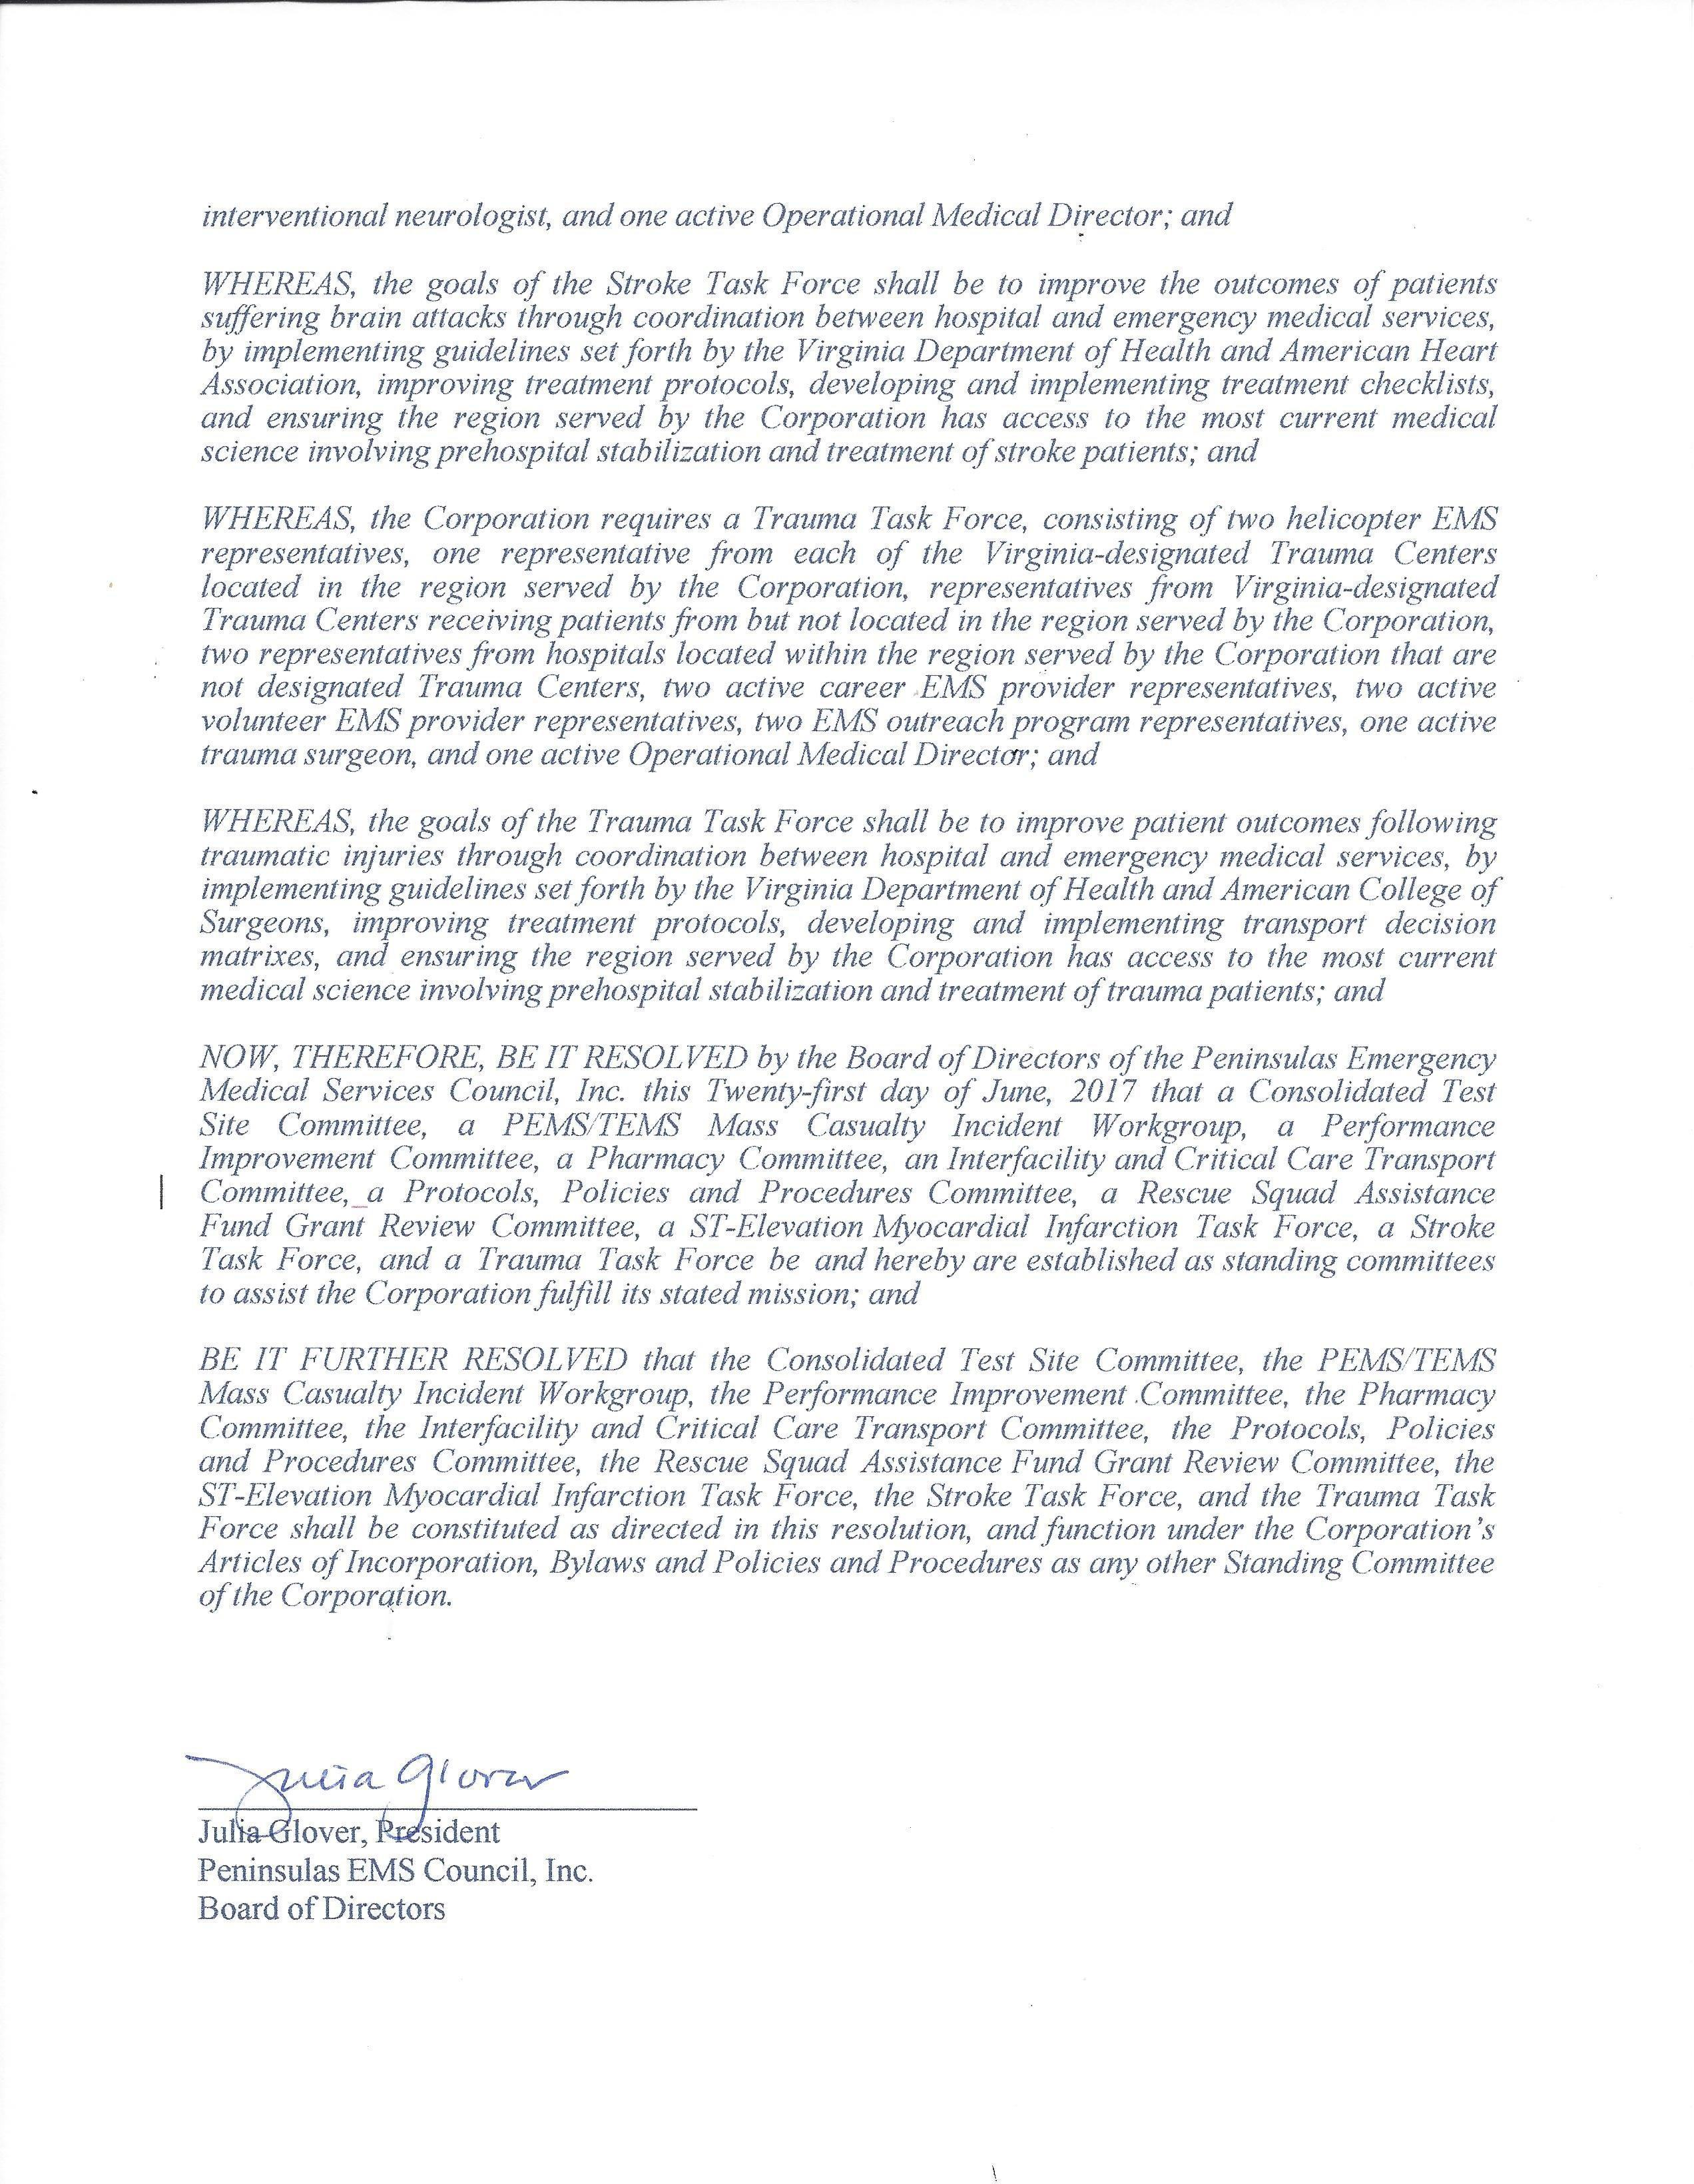 rsz resolution to establish additional standing committees 6 21 17 page 5